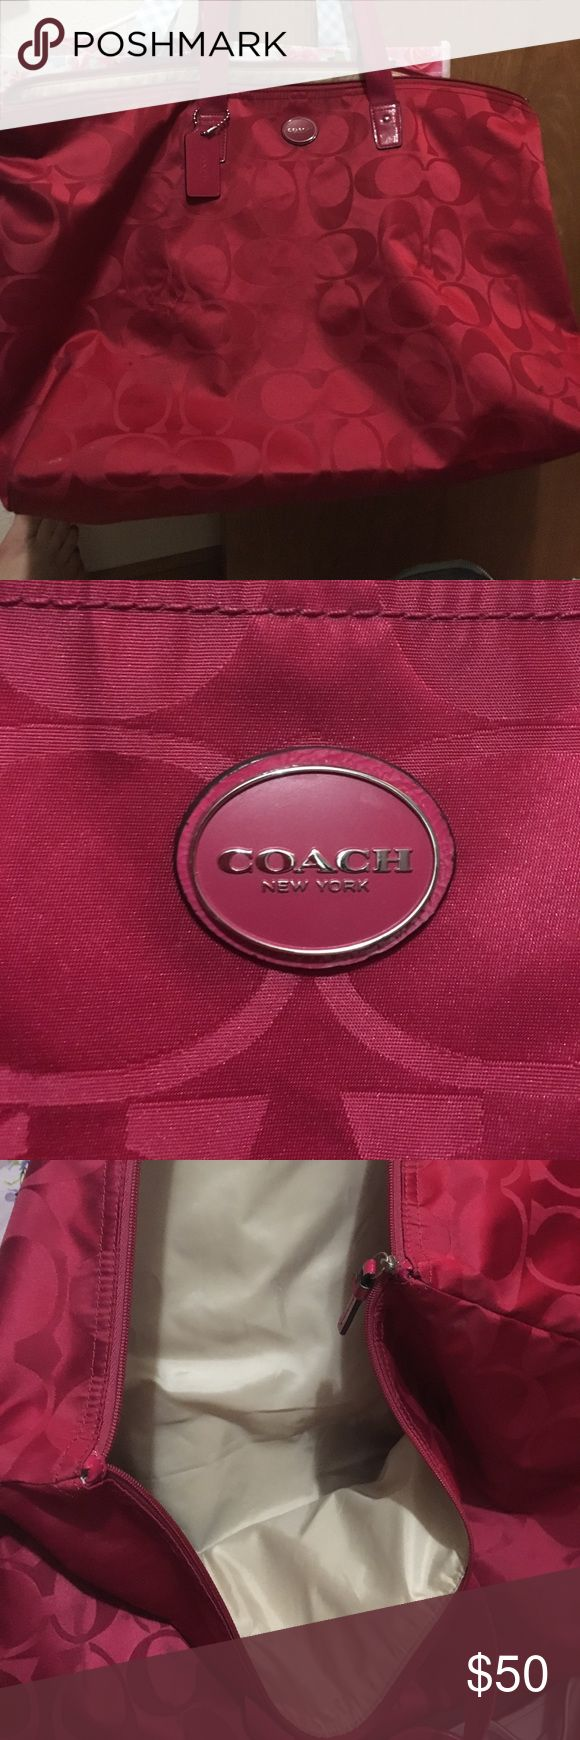 Coach travel bag. Coach travel bag. Great for business trips. Coach Bags Travel Bags